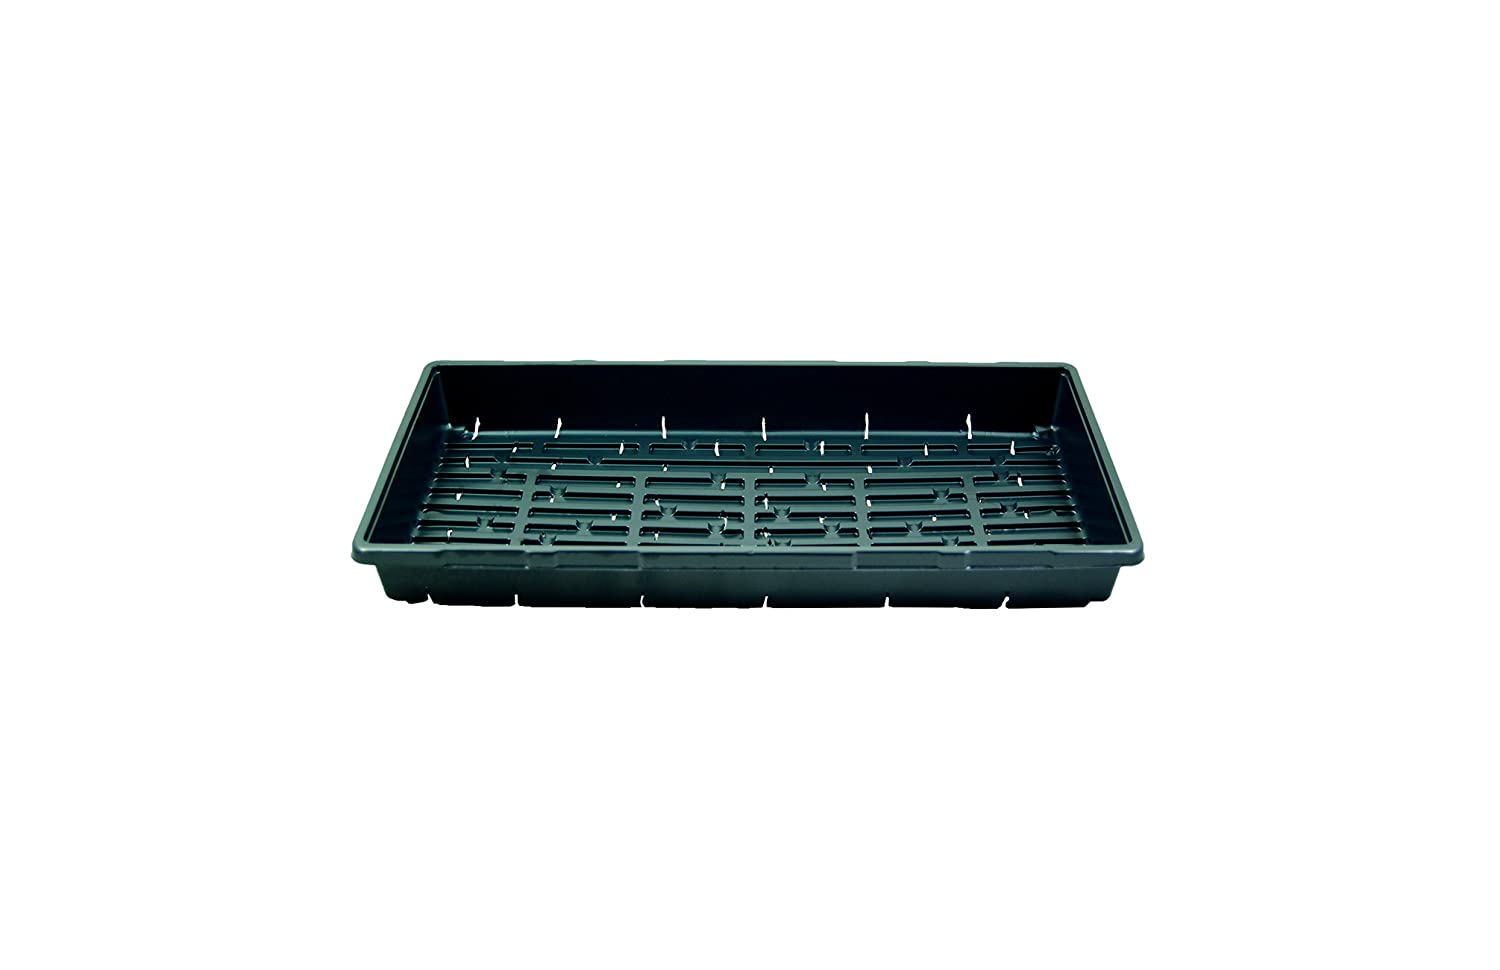 1020 Greenhouse Trays (With Holes) - Growing - Plant - Germination - Seed Tray - One Case of 100